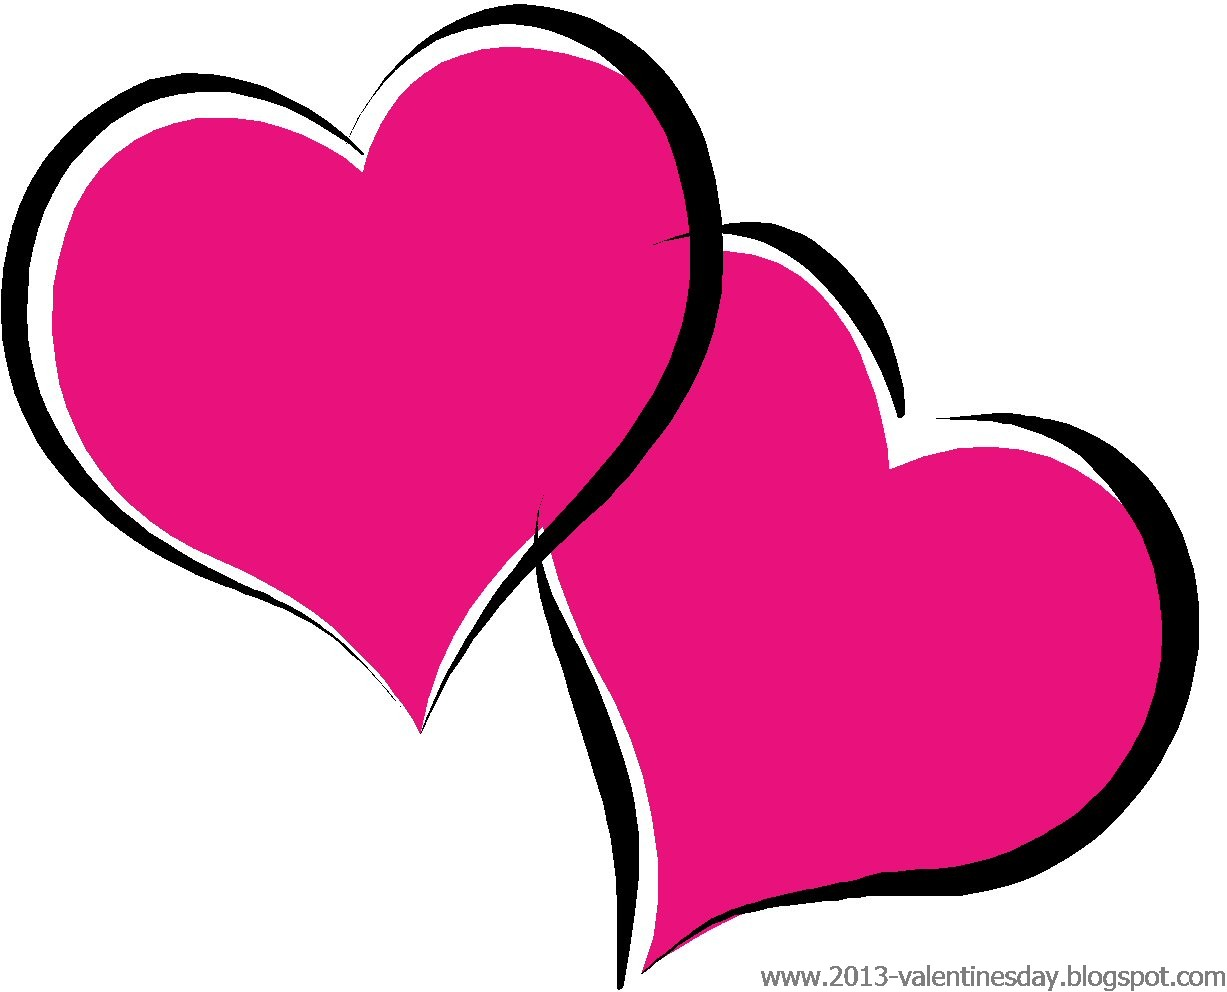 Cute bumbblebee valentine clipart. Heart clipartfest black and